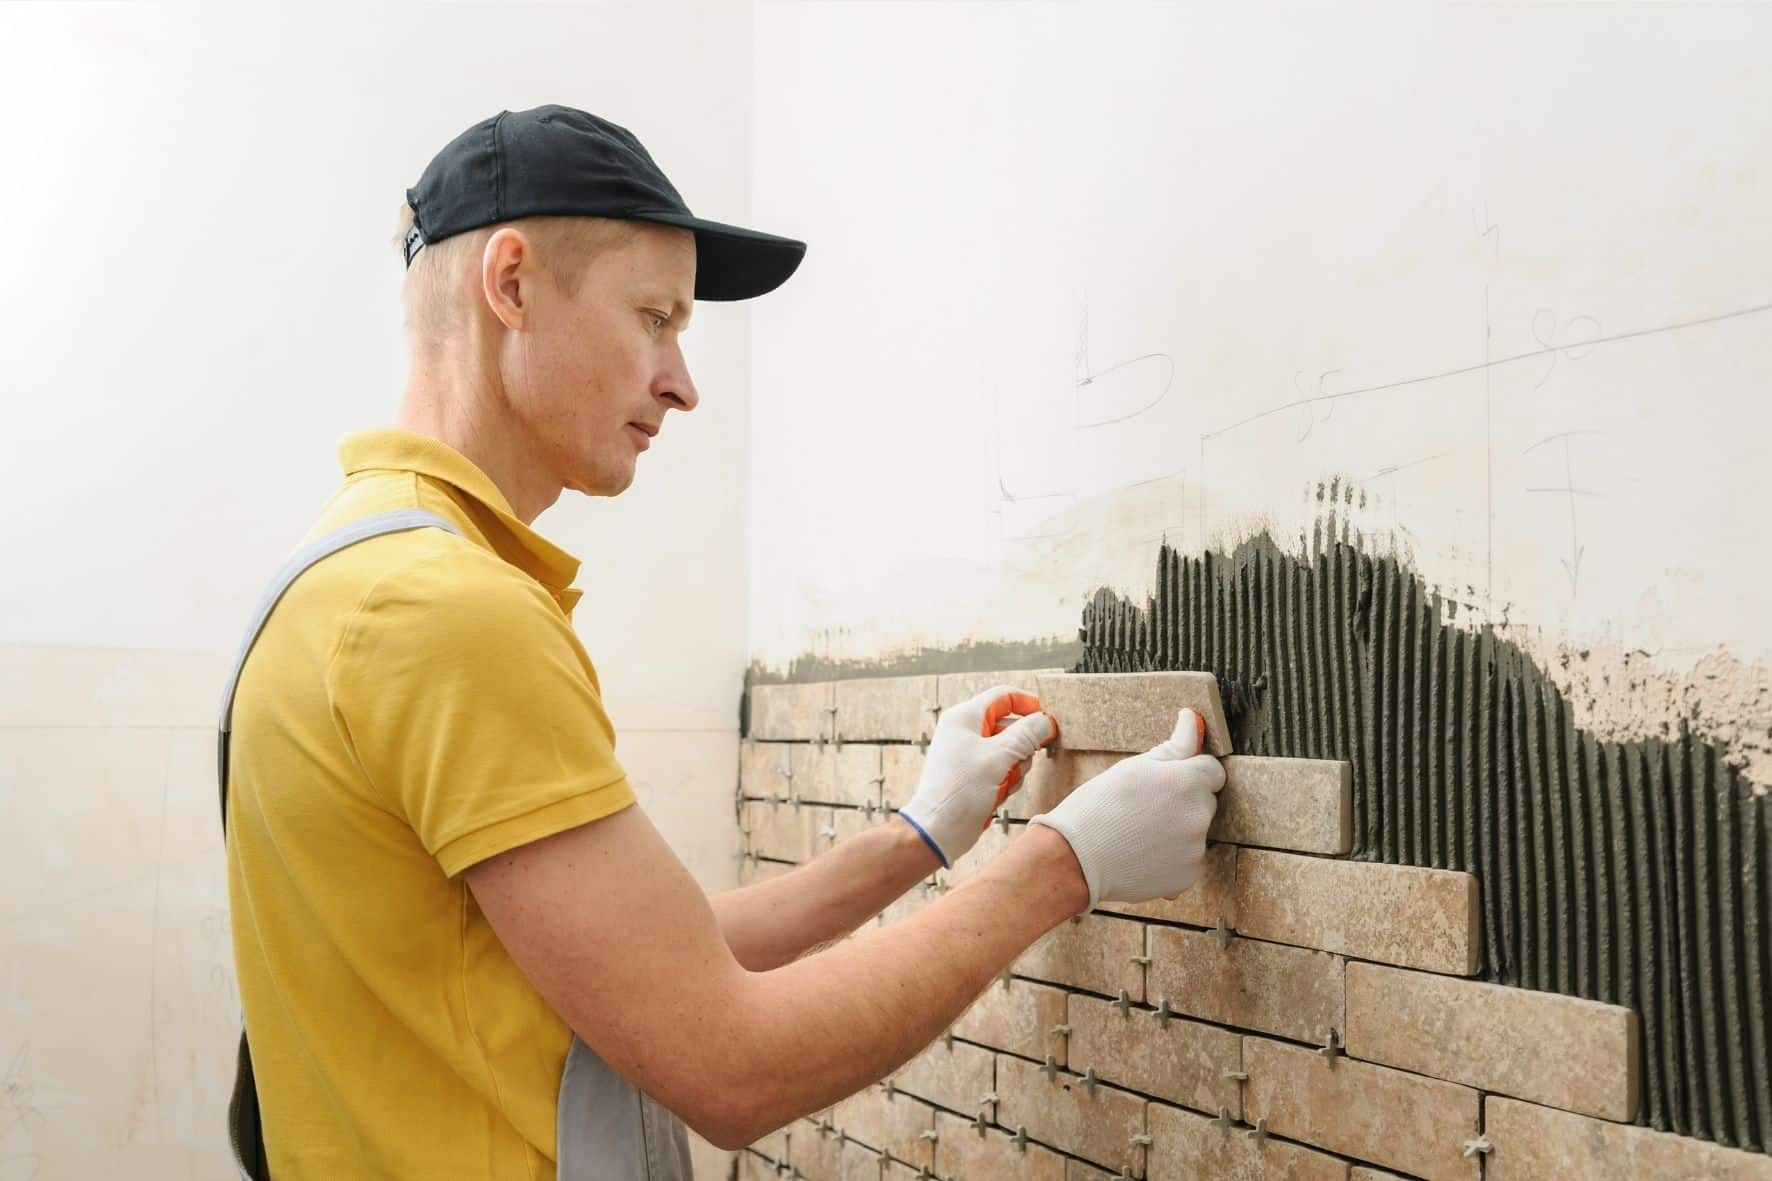 A Geelong Tiler employee in yellow uniform installing brick tiles on a wall